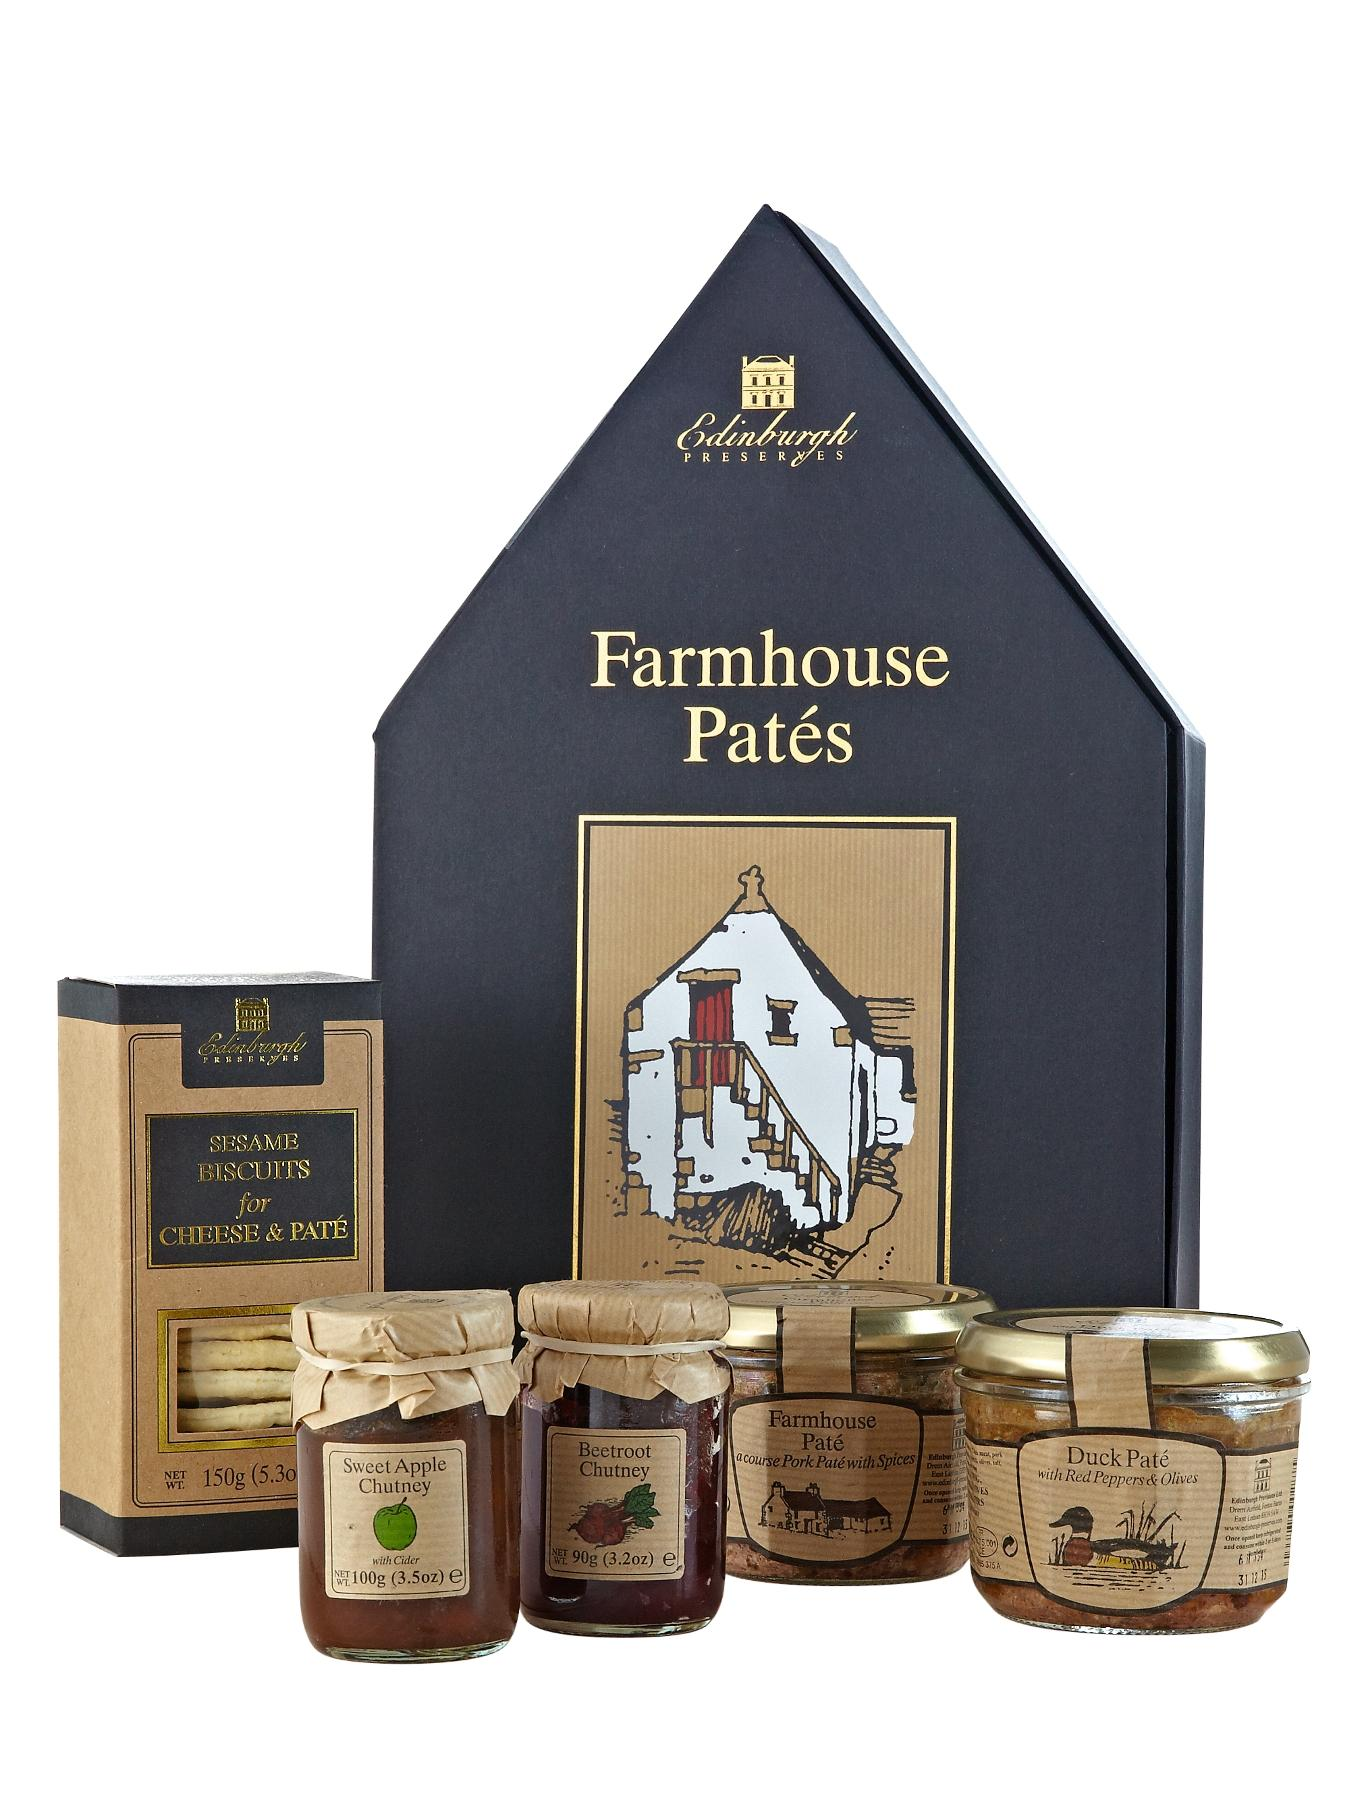 Edinburgh Preserves Farmhouse Pates Gift Box